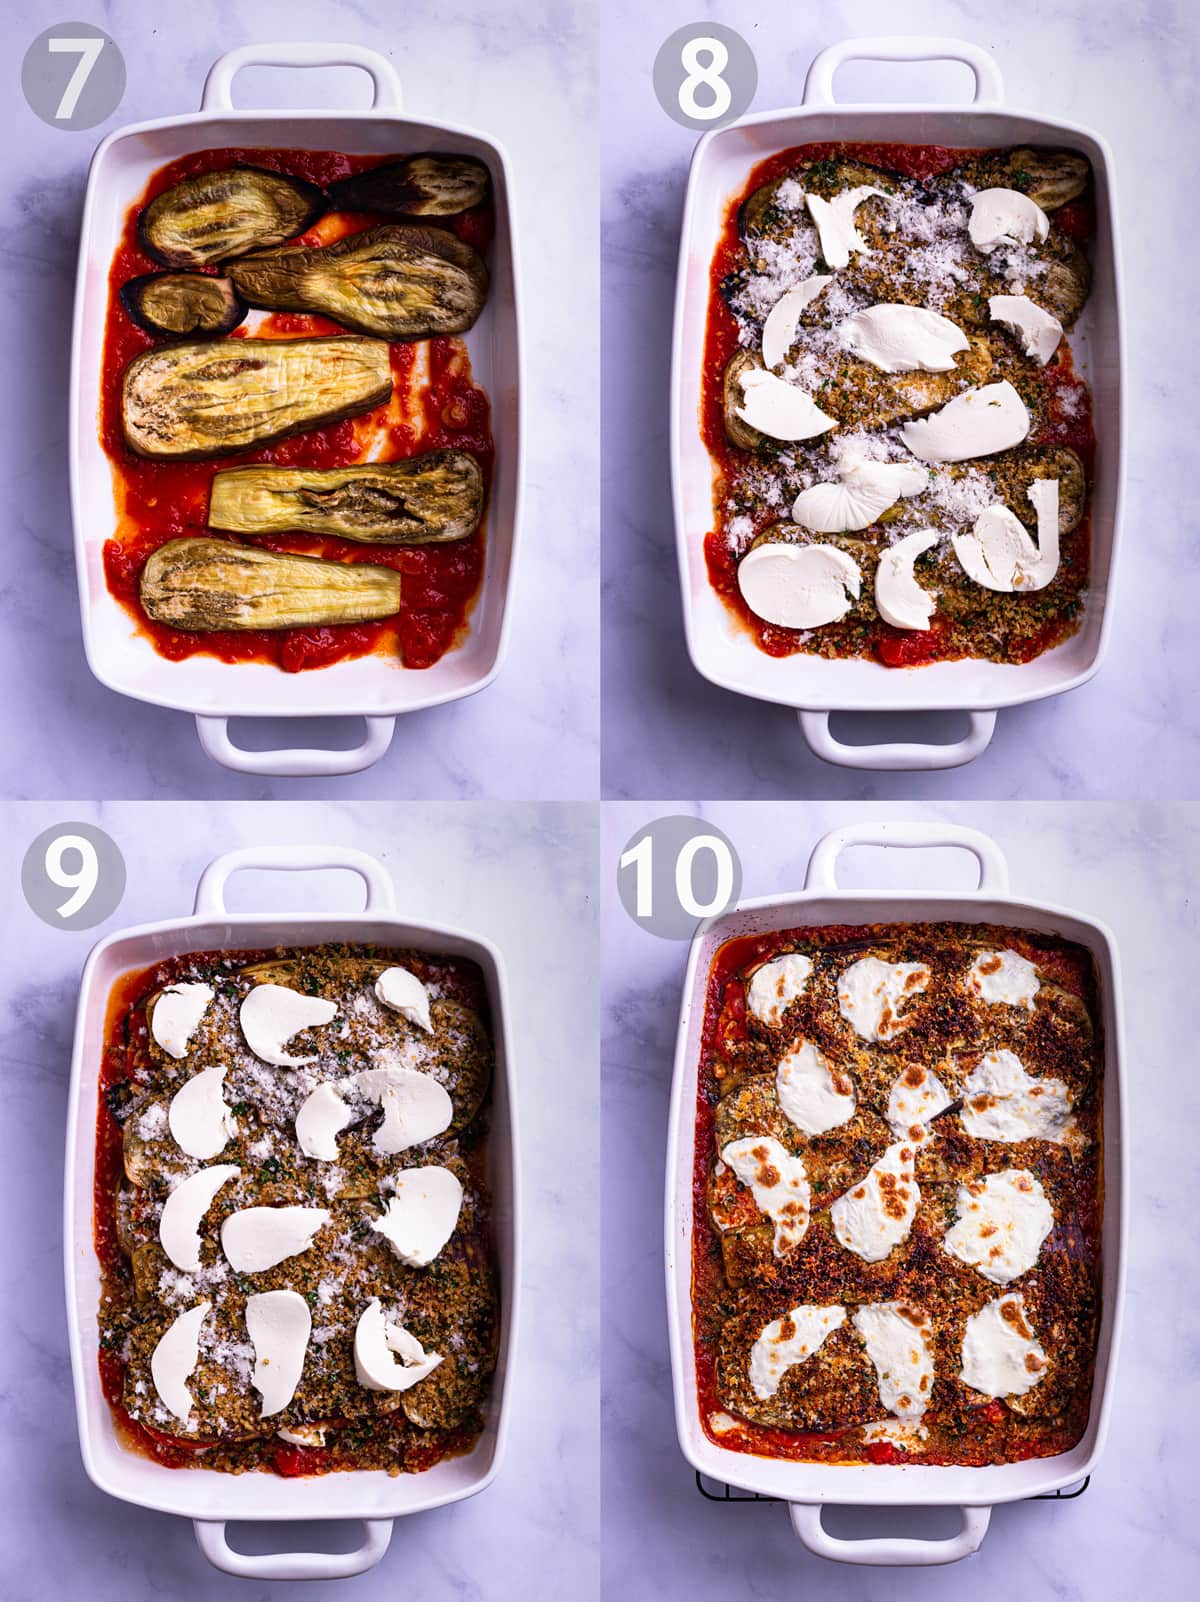 Overhead view of 4 side-by-side pictures showing steps of layering eggplant parm.